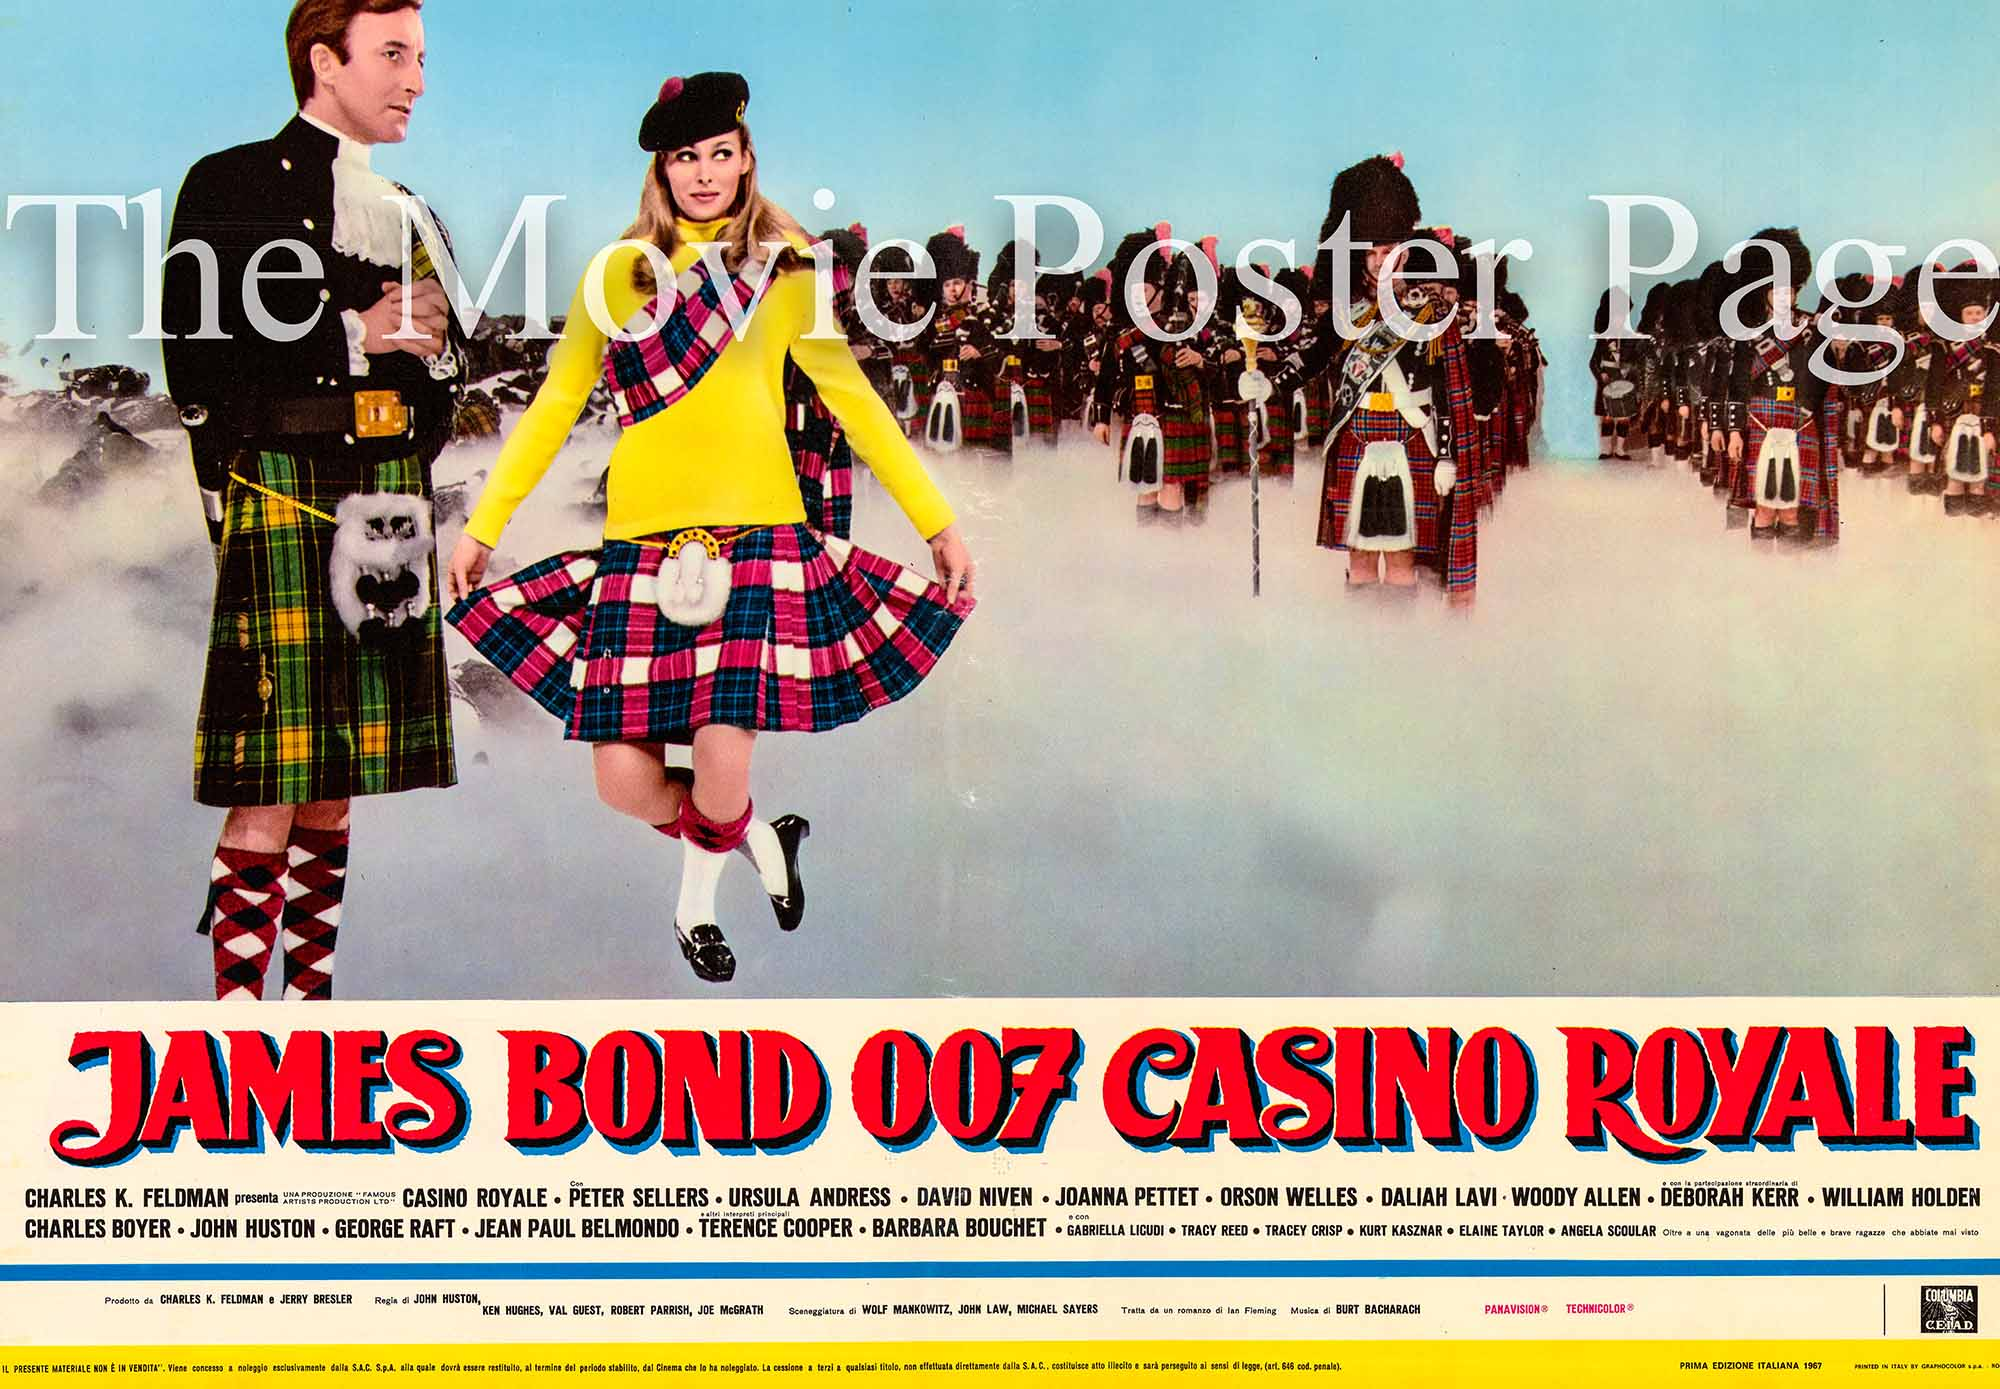 This is an Italian fotobusta poster designed to promote the 1967 Ken Hughes and John Huston film Casino Royale starring Peter Sellers as James bond.